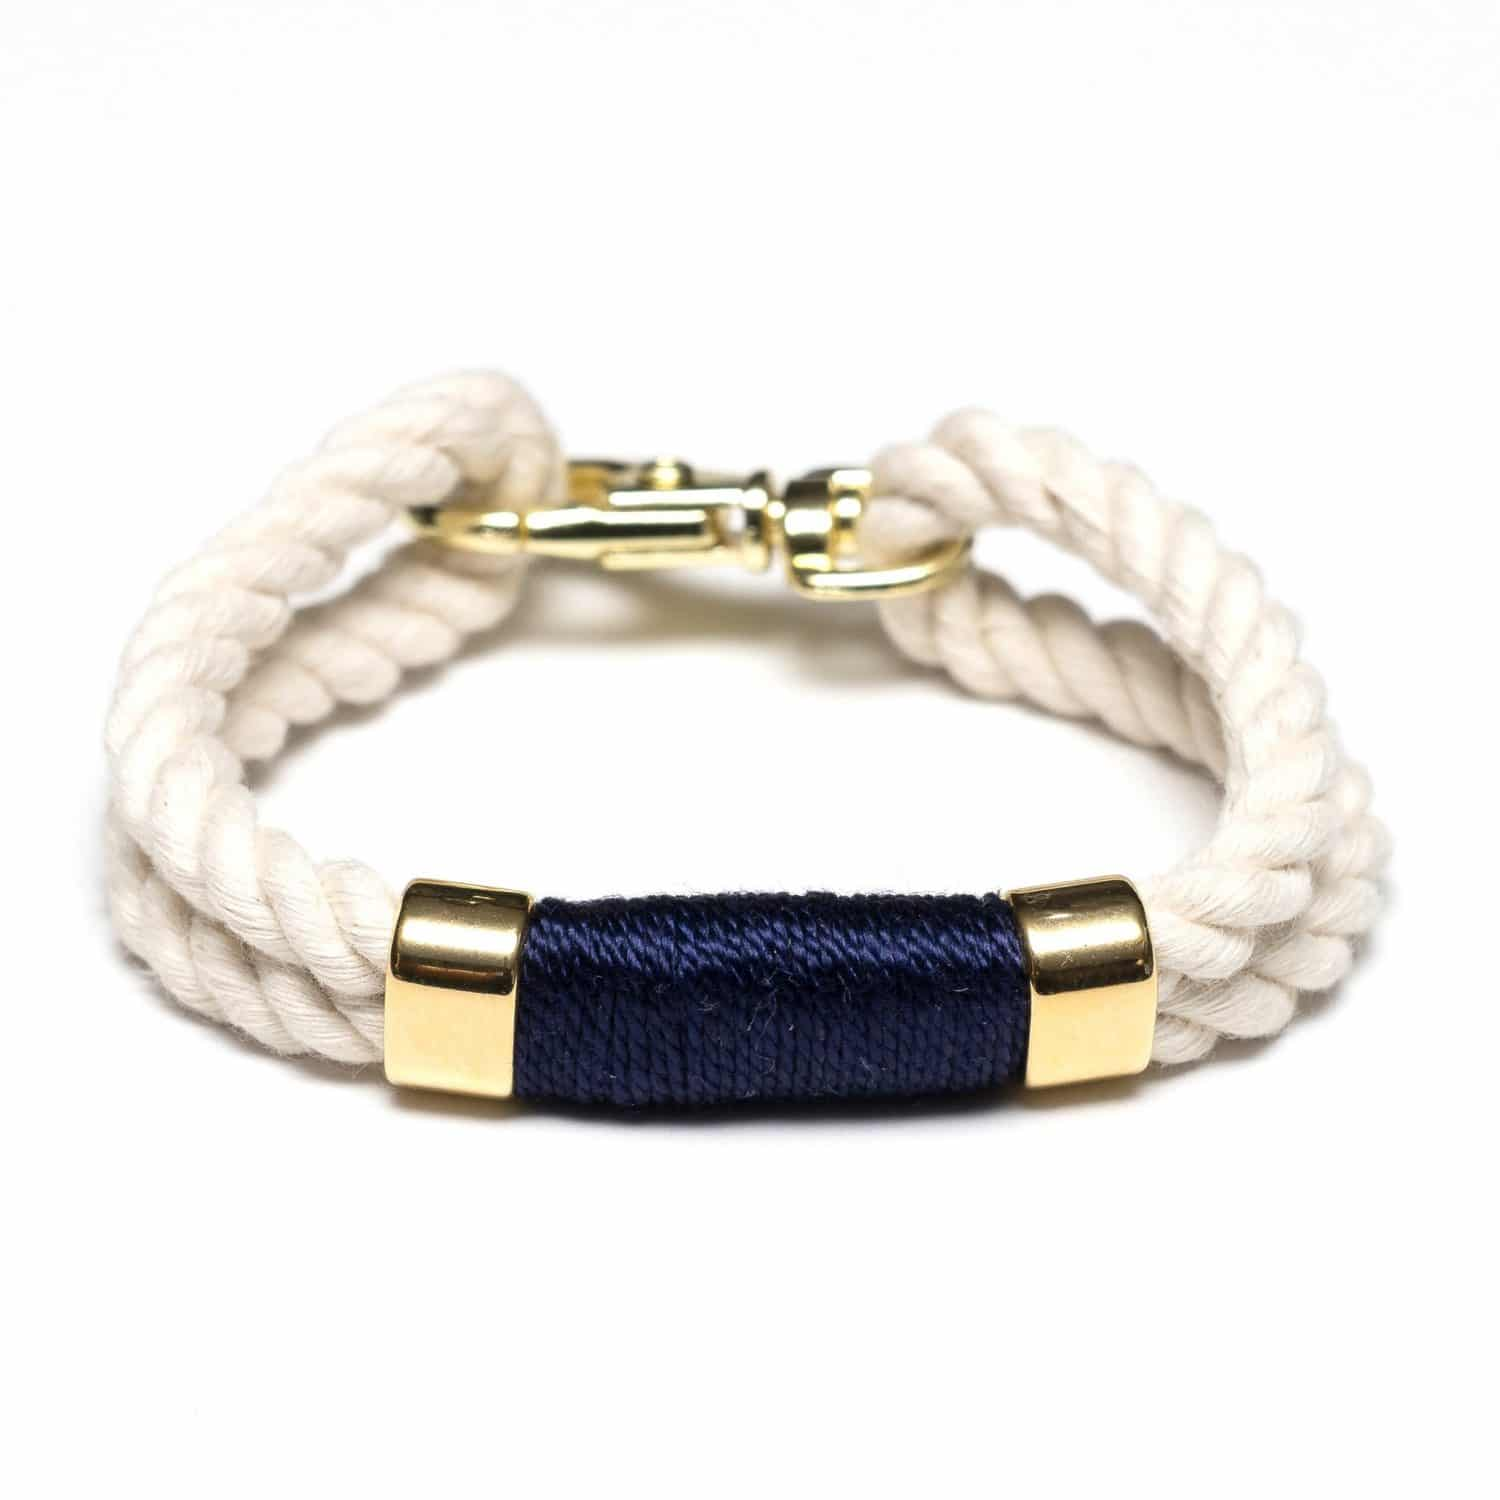 store we foxtrot these its maine the each to for wait arent bracelets arrive musings bracelet summer cant them nautical great new and rope in is handmade